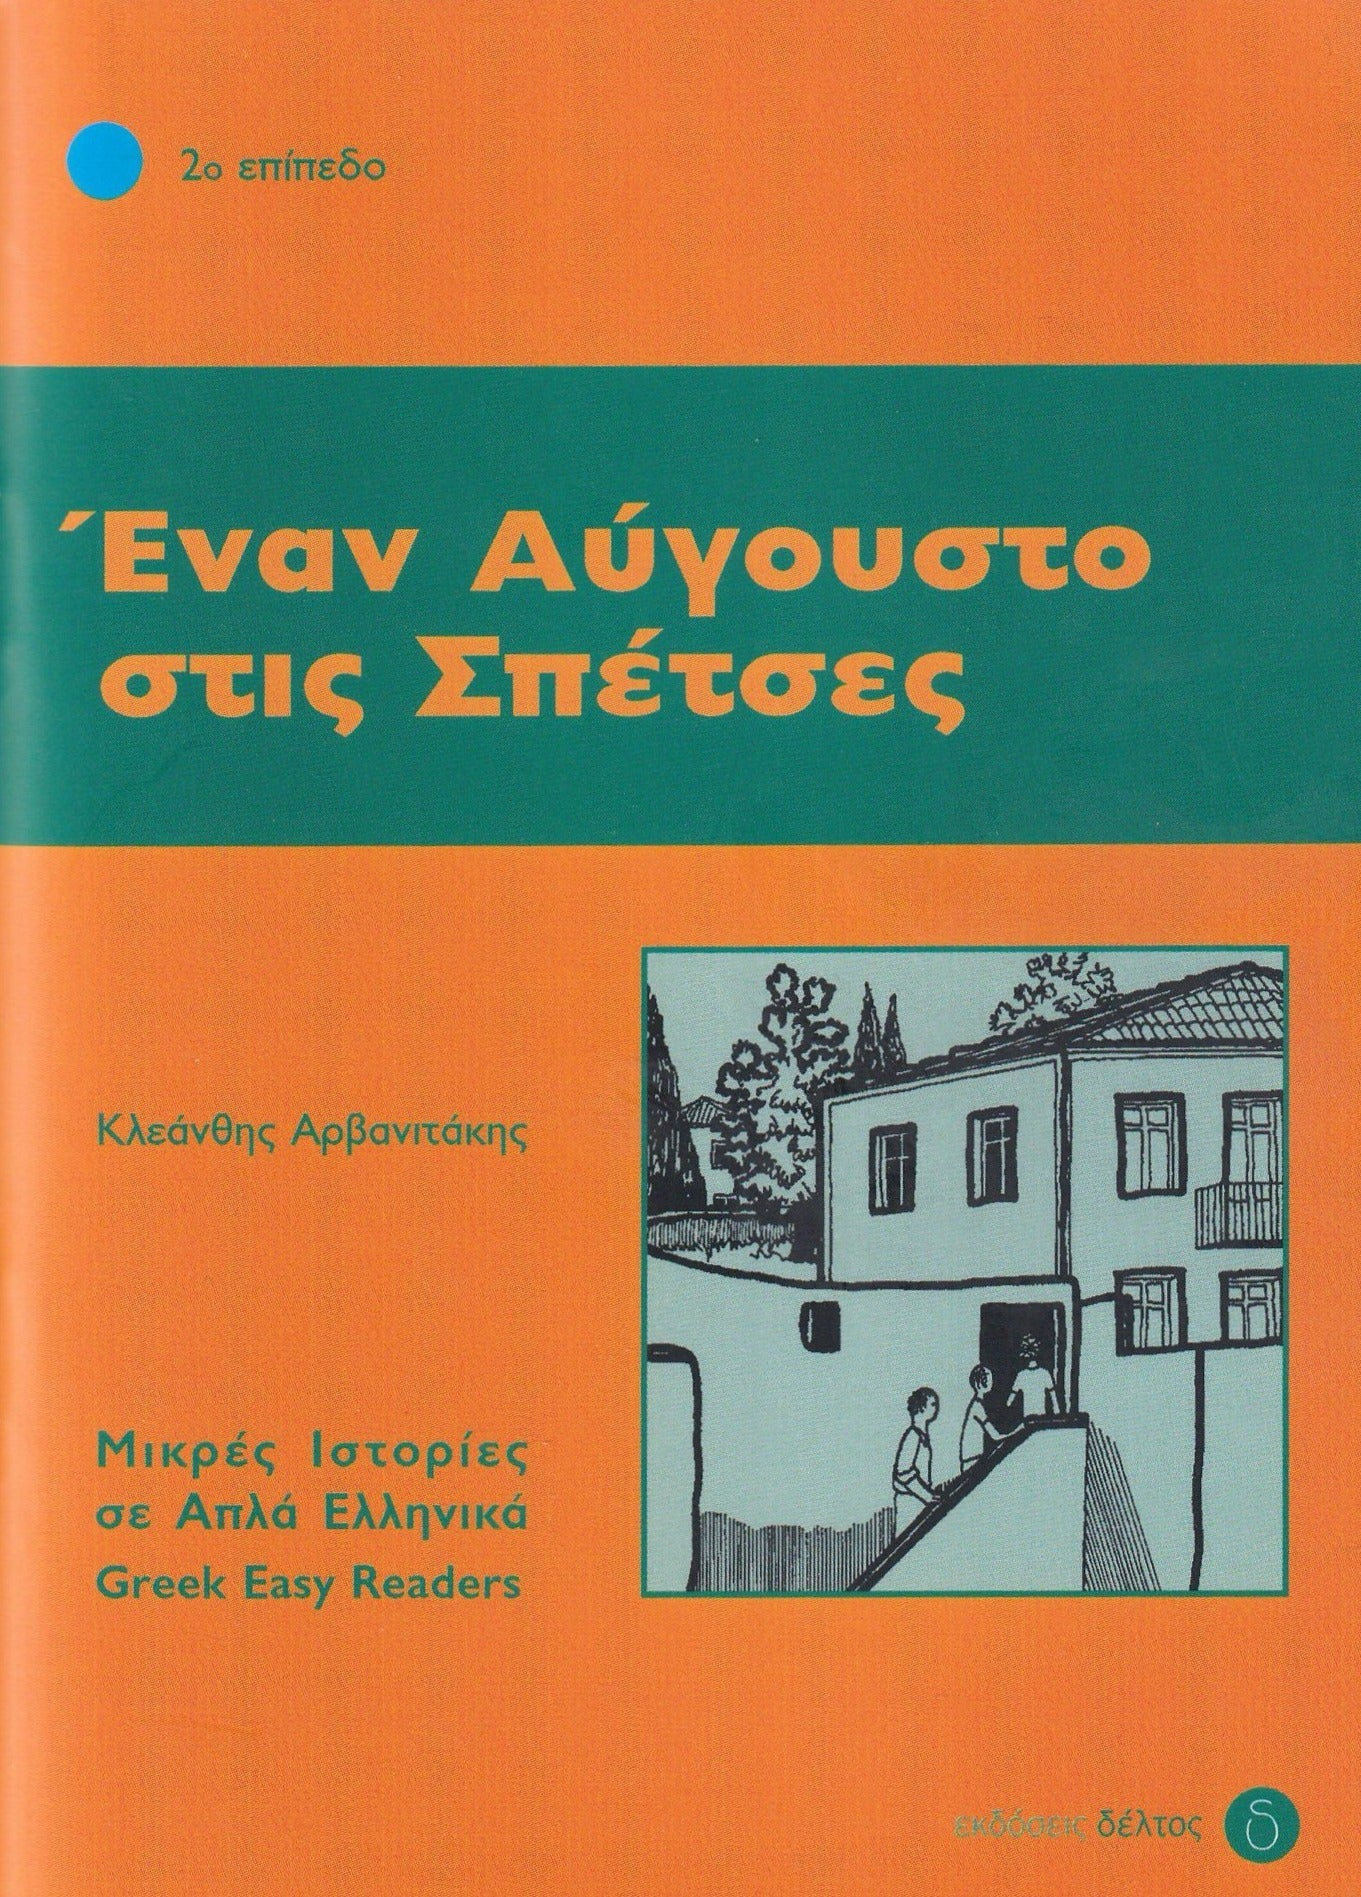 Enan Avgousto stis Spetses (Greek Easy Readers - Stage 2) - 9789607914118 - front cover